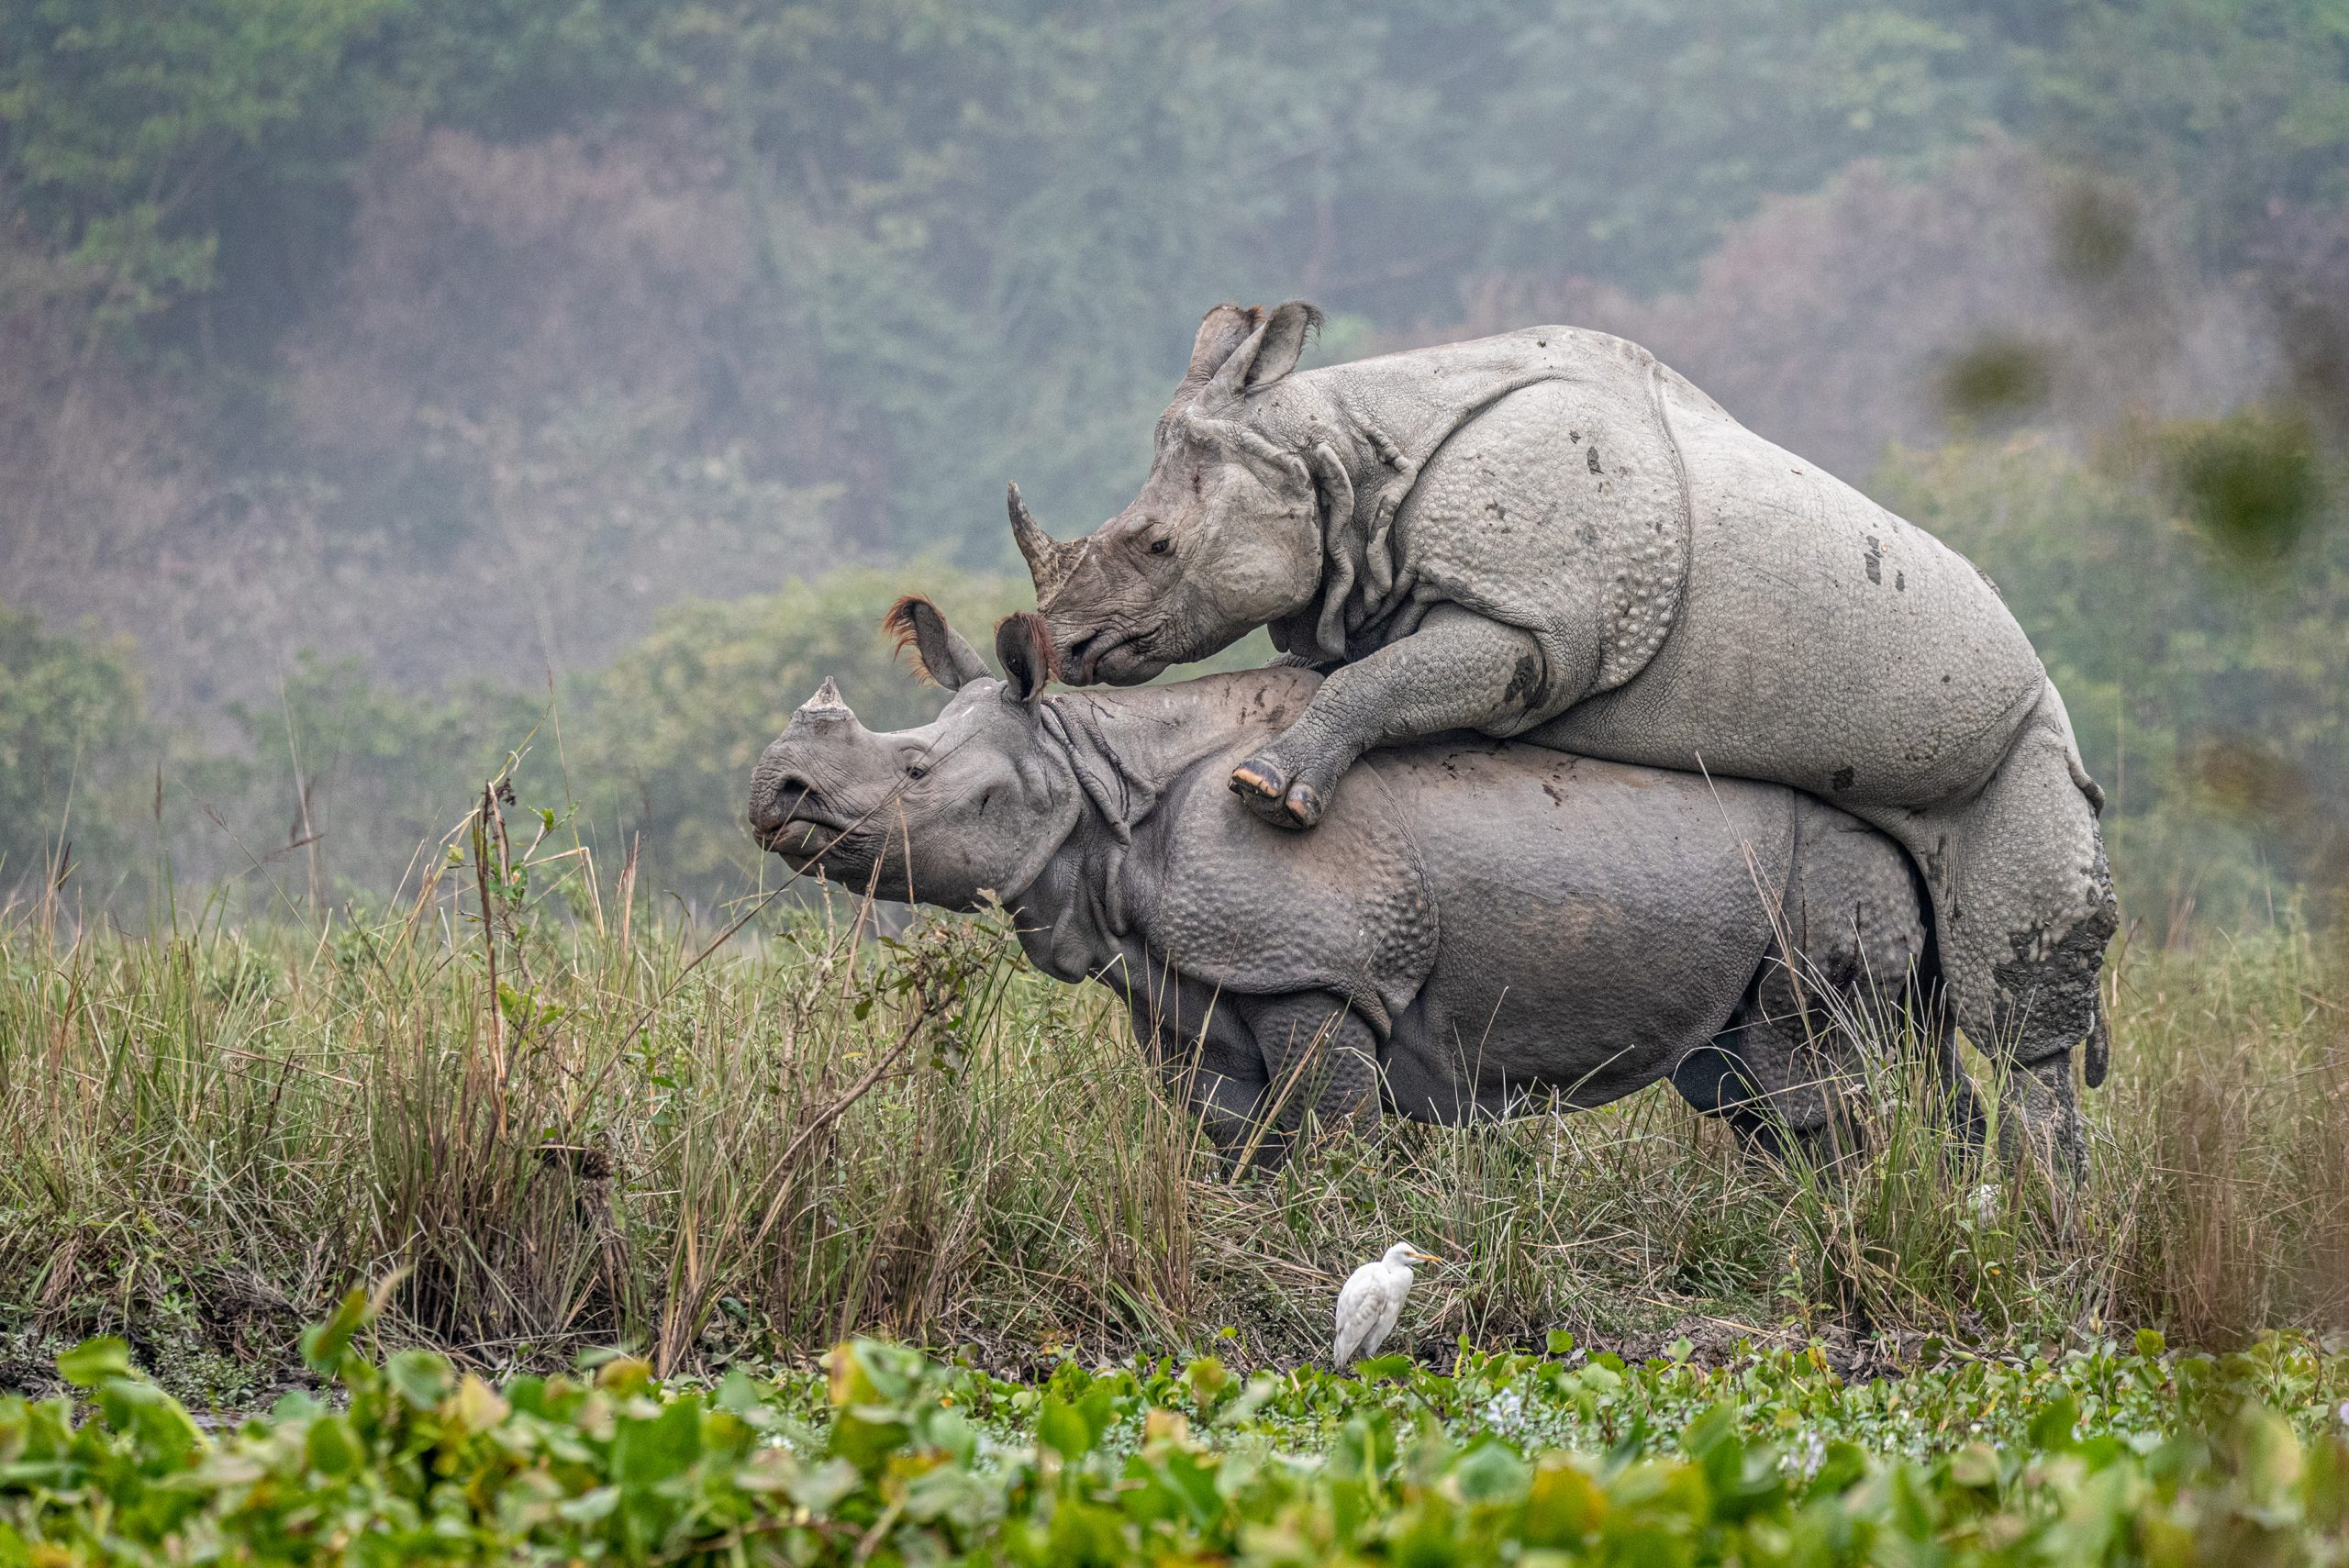 Mating rhinoceros pair at Pobitora Wildlife sanctuary